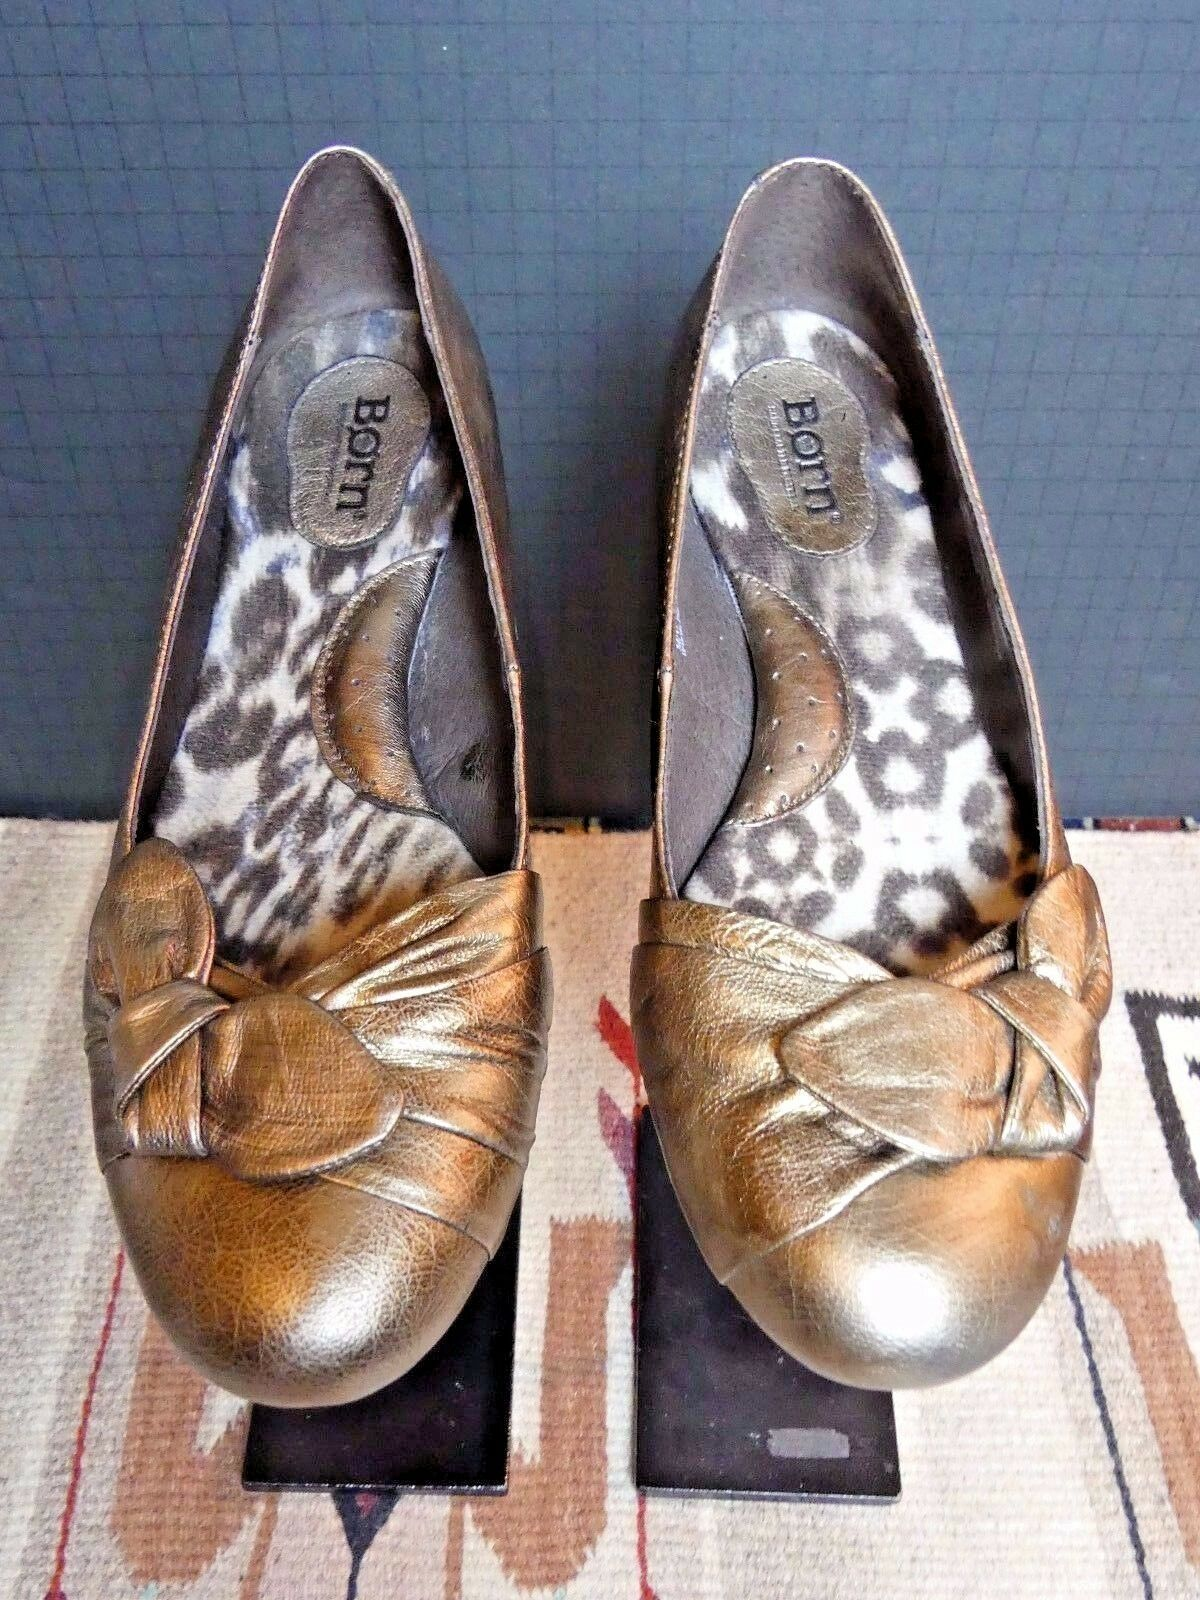 Women's BORN Gold Leather Bow-Tie Flats Sz. 38.5/7.5 NICE!